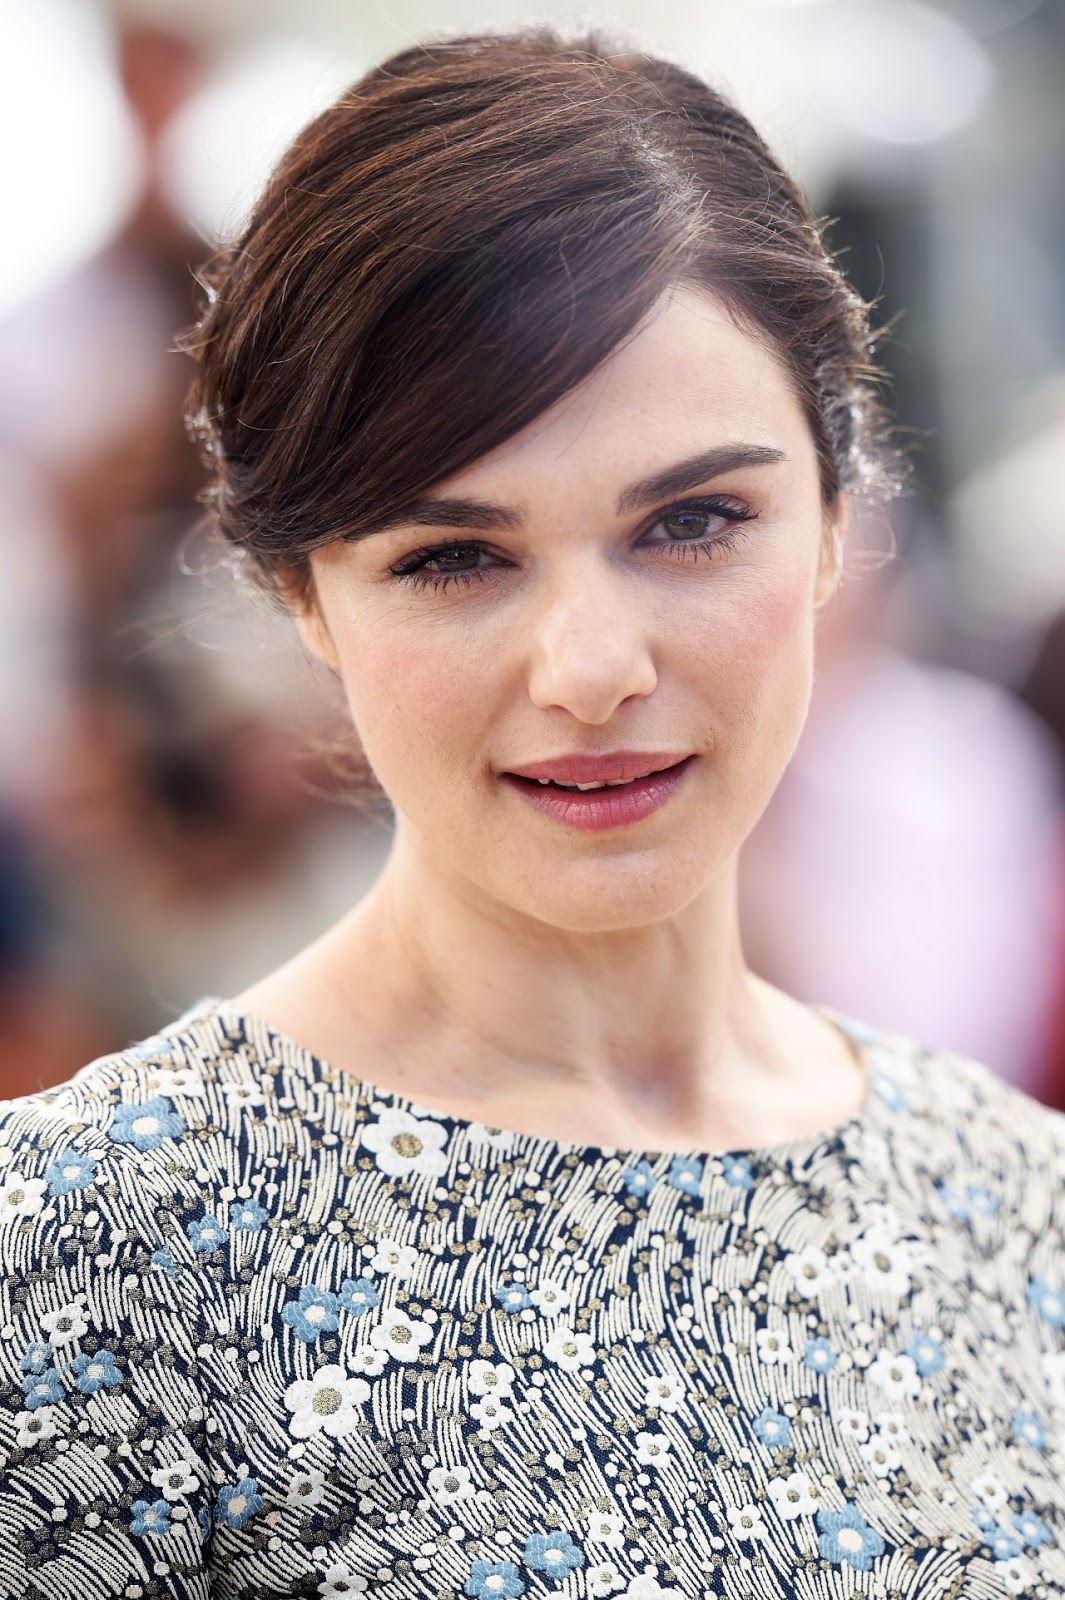 Rachel Weisz Youth Photocall in Cannes